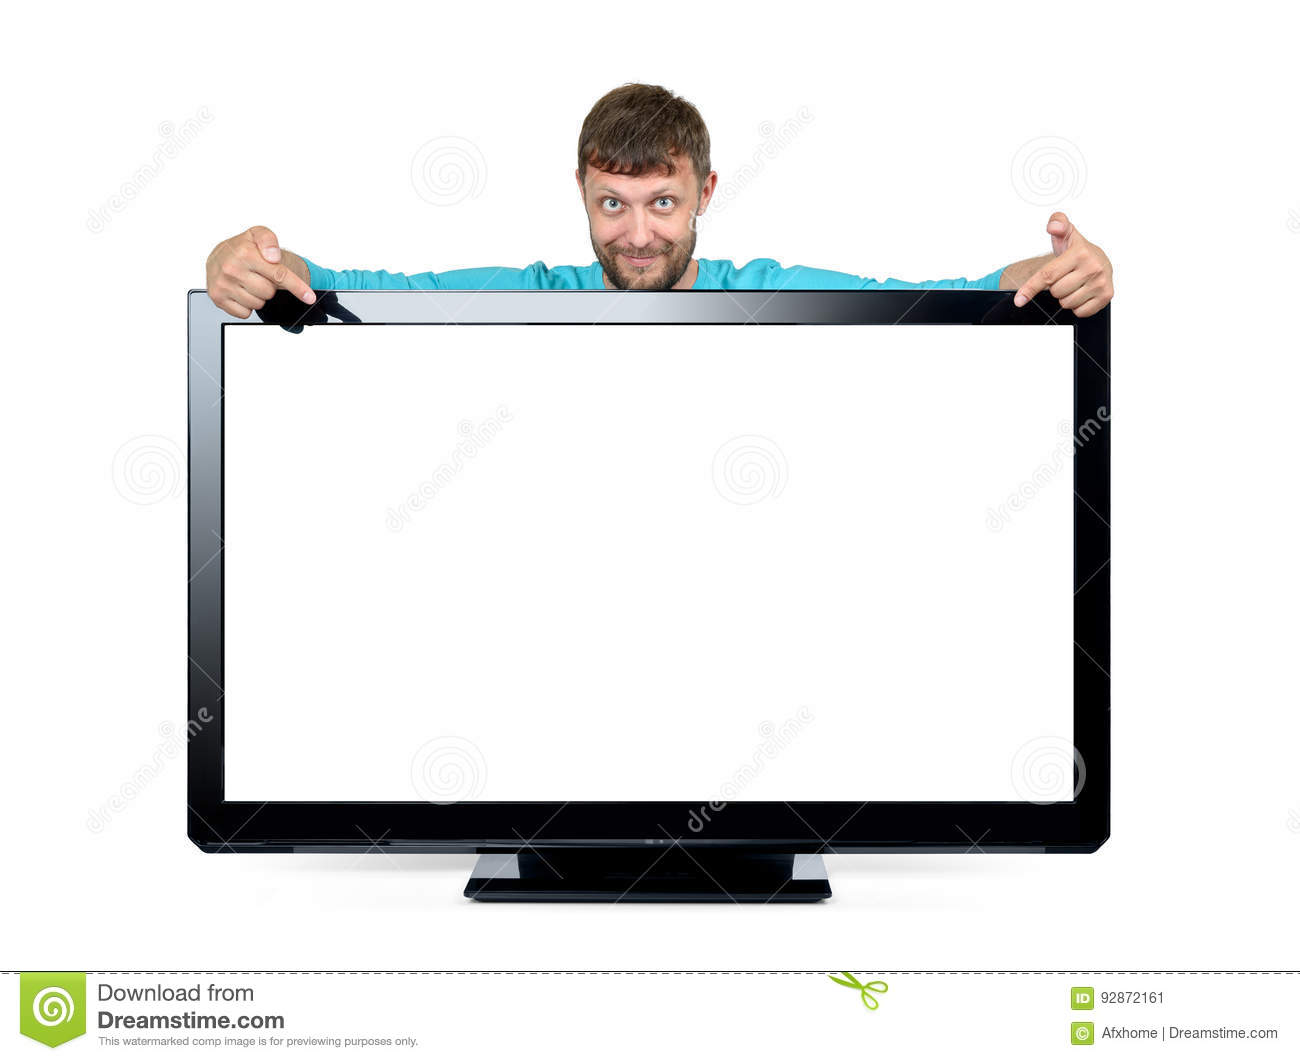 Bearded man advertises a widescreen TV on white background. File contains a path to isolation.